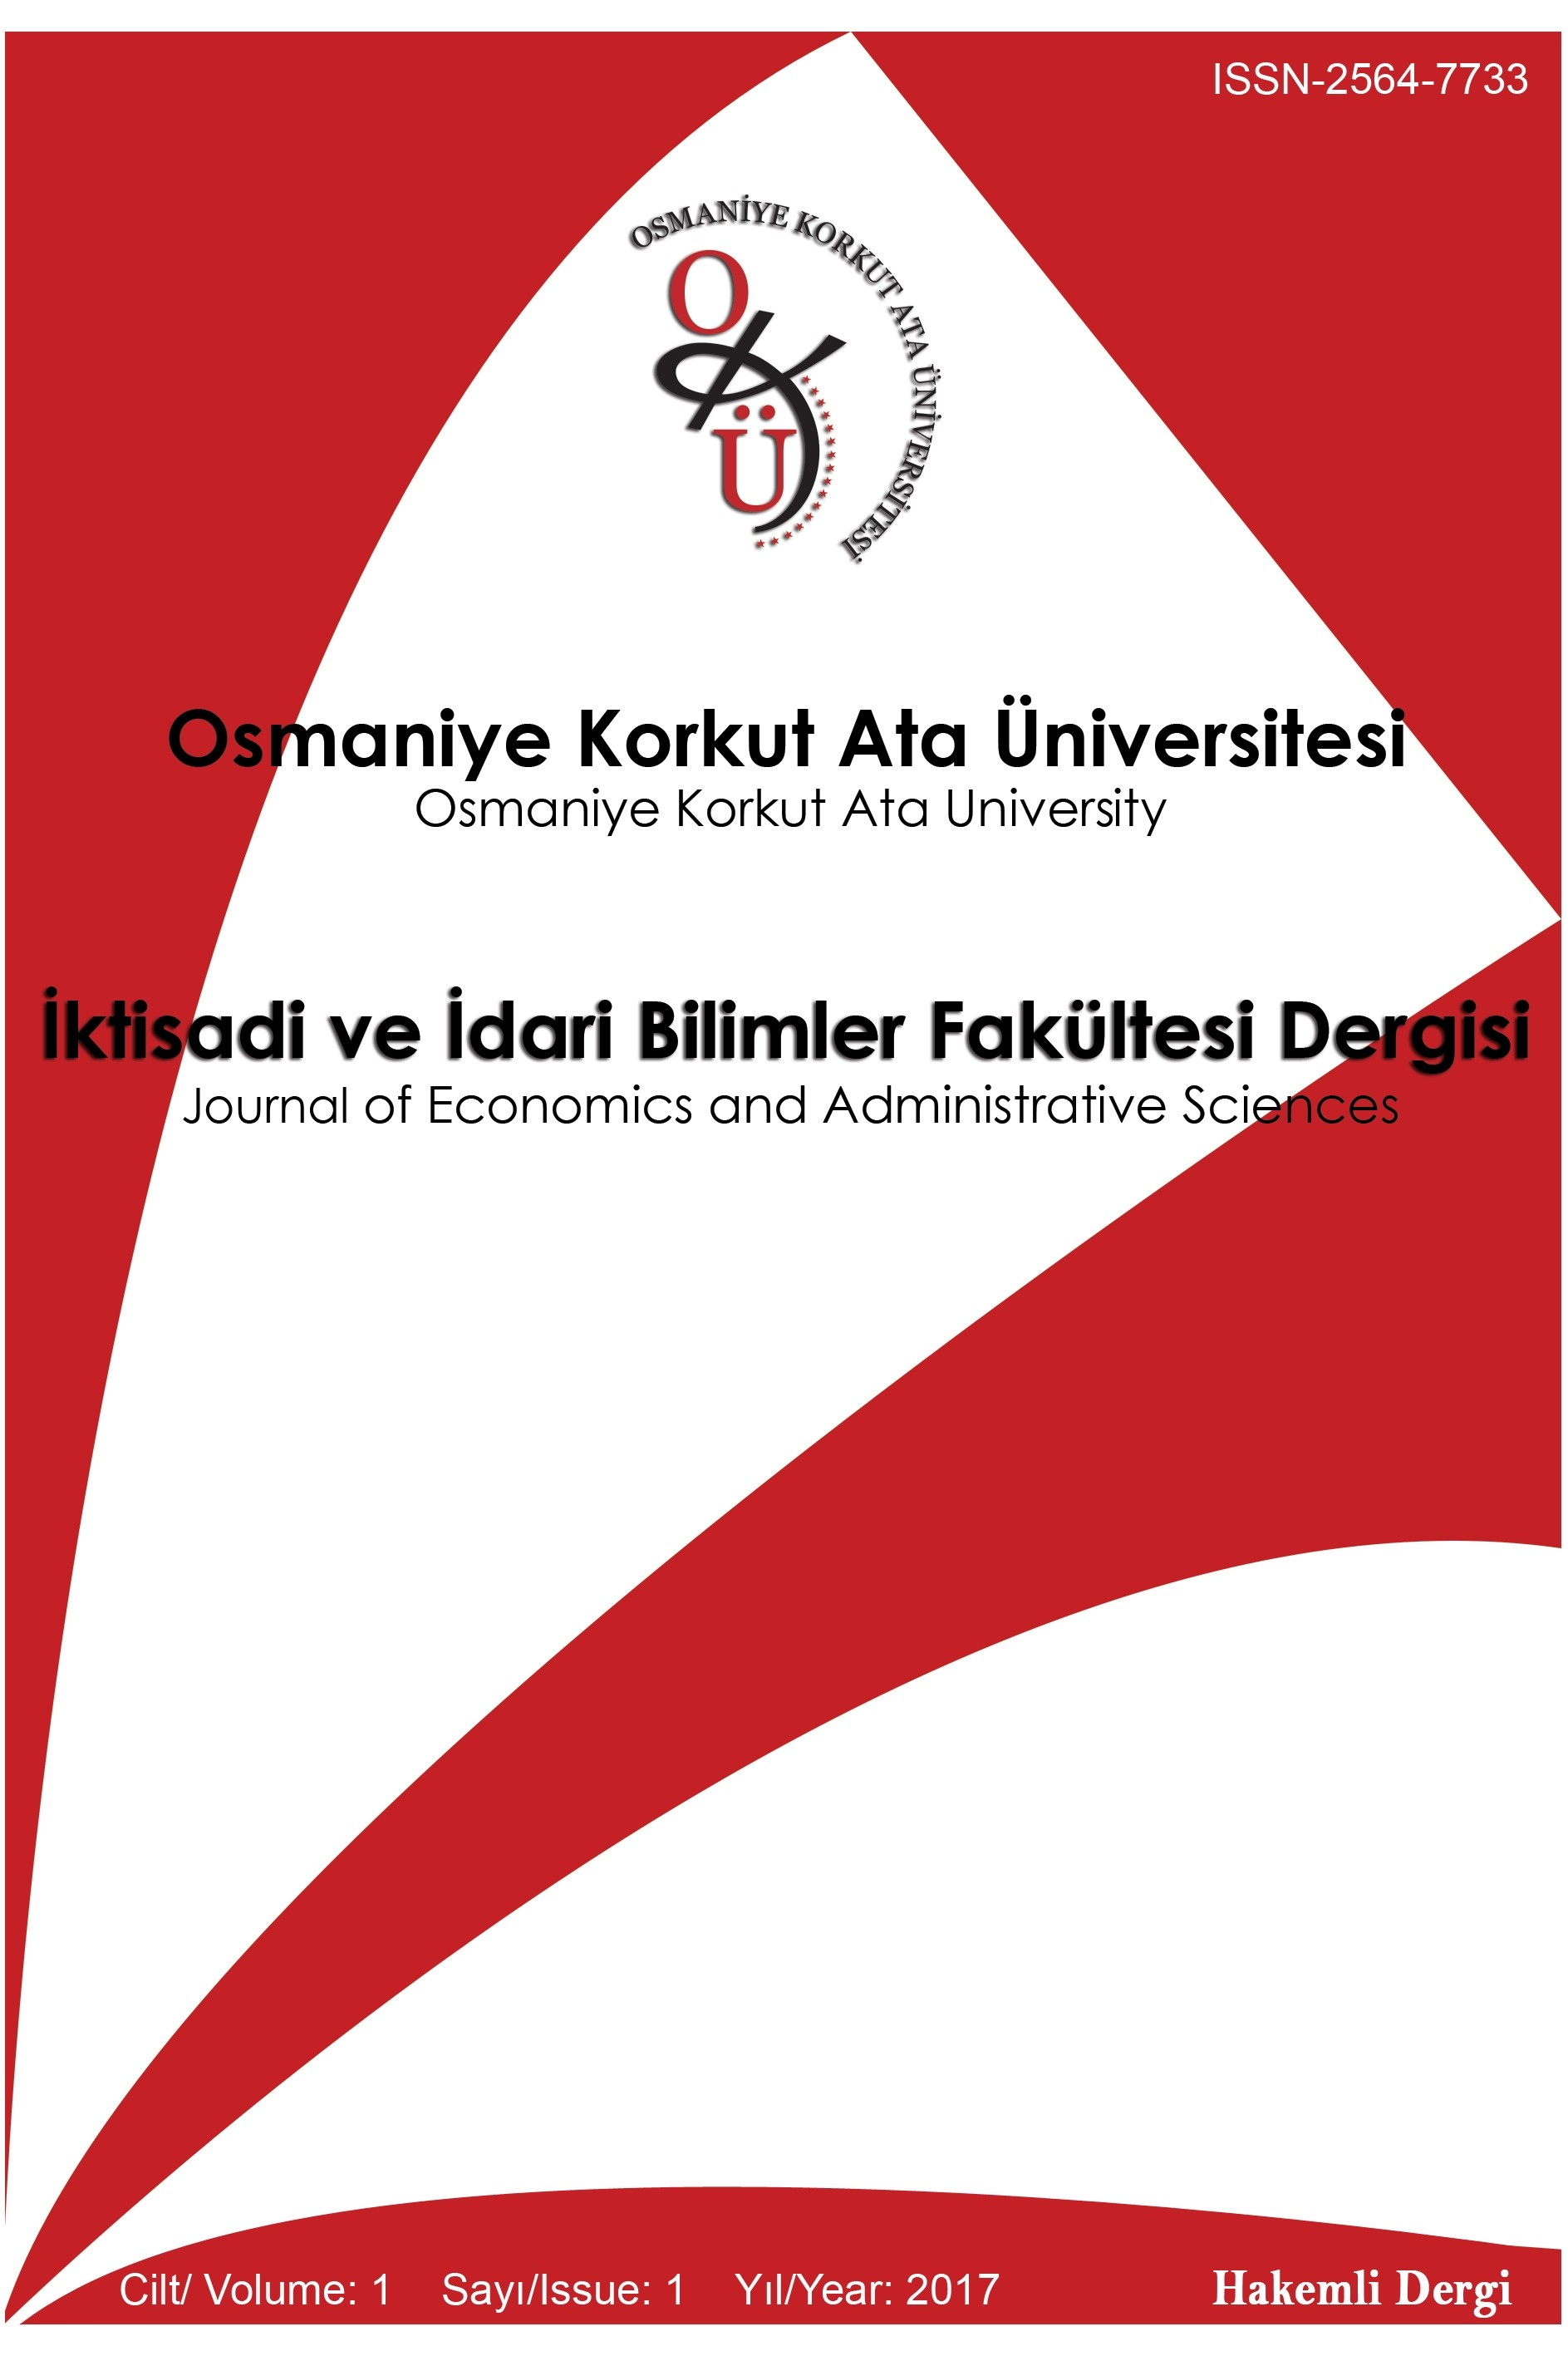 Osmaniye Korkut Ata University Journal of Economics and Administrative Sciences